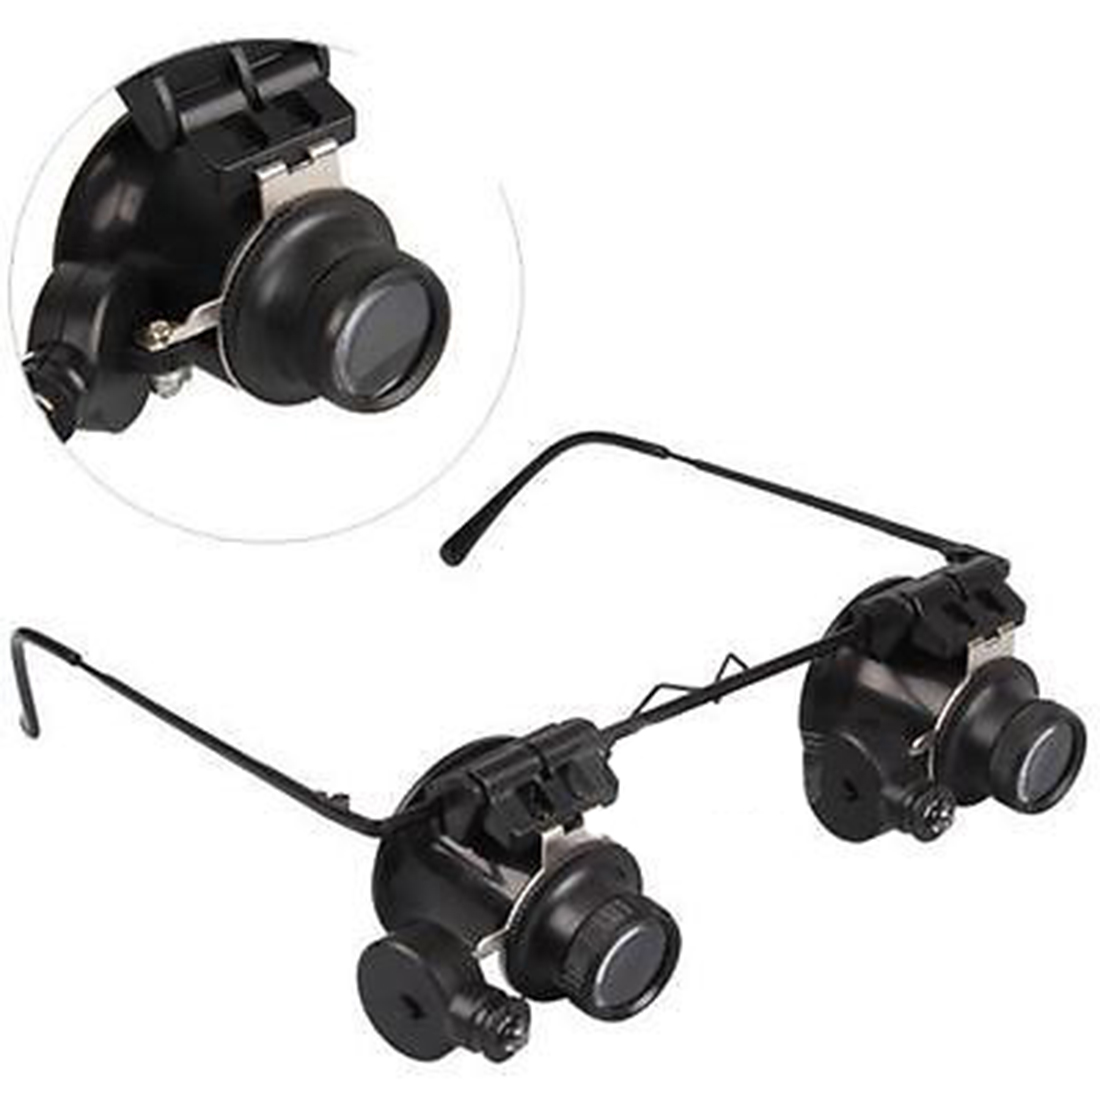 Dual Eye Glasses Loupe Lens LED 20X Magnifier Magnifying Jeweler Watch Repair Loupe Magnification Jewellers Loupe portable handheld 30x 21mm triplet loupe jeweler loupe magnifier w white led lights uv lighting led